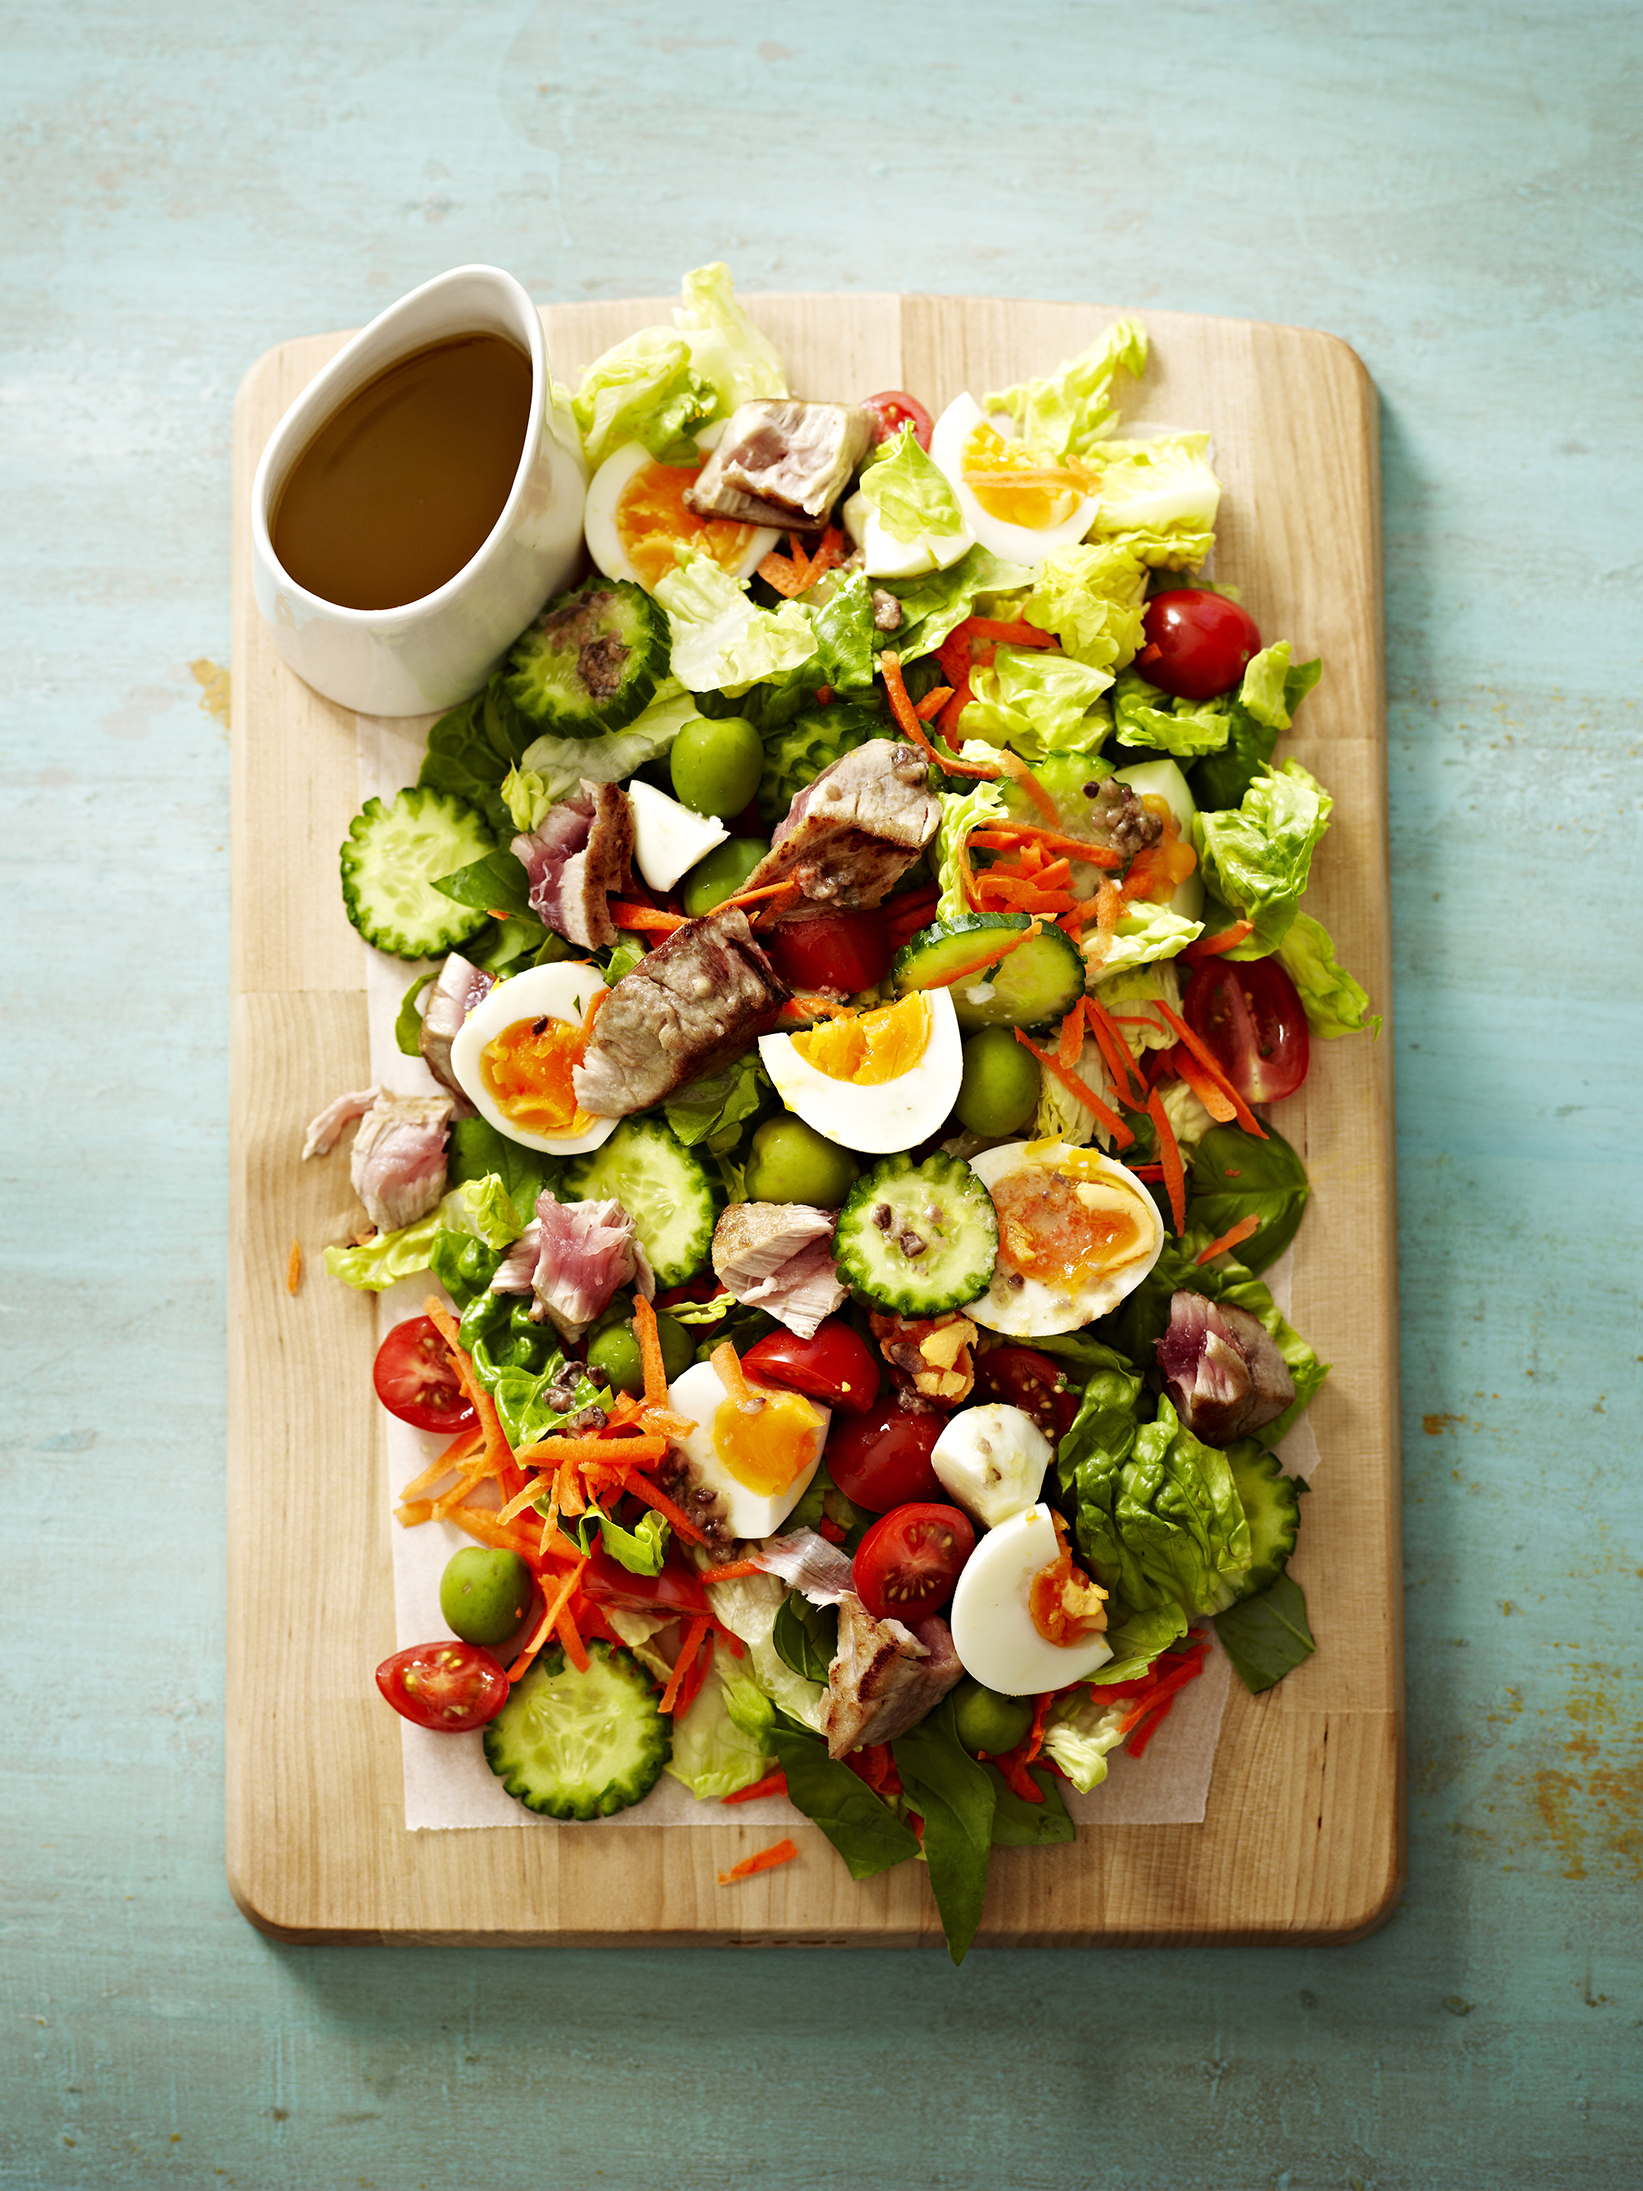 Tuna and Egg Chopped Salad with Anchovy Dressing